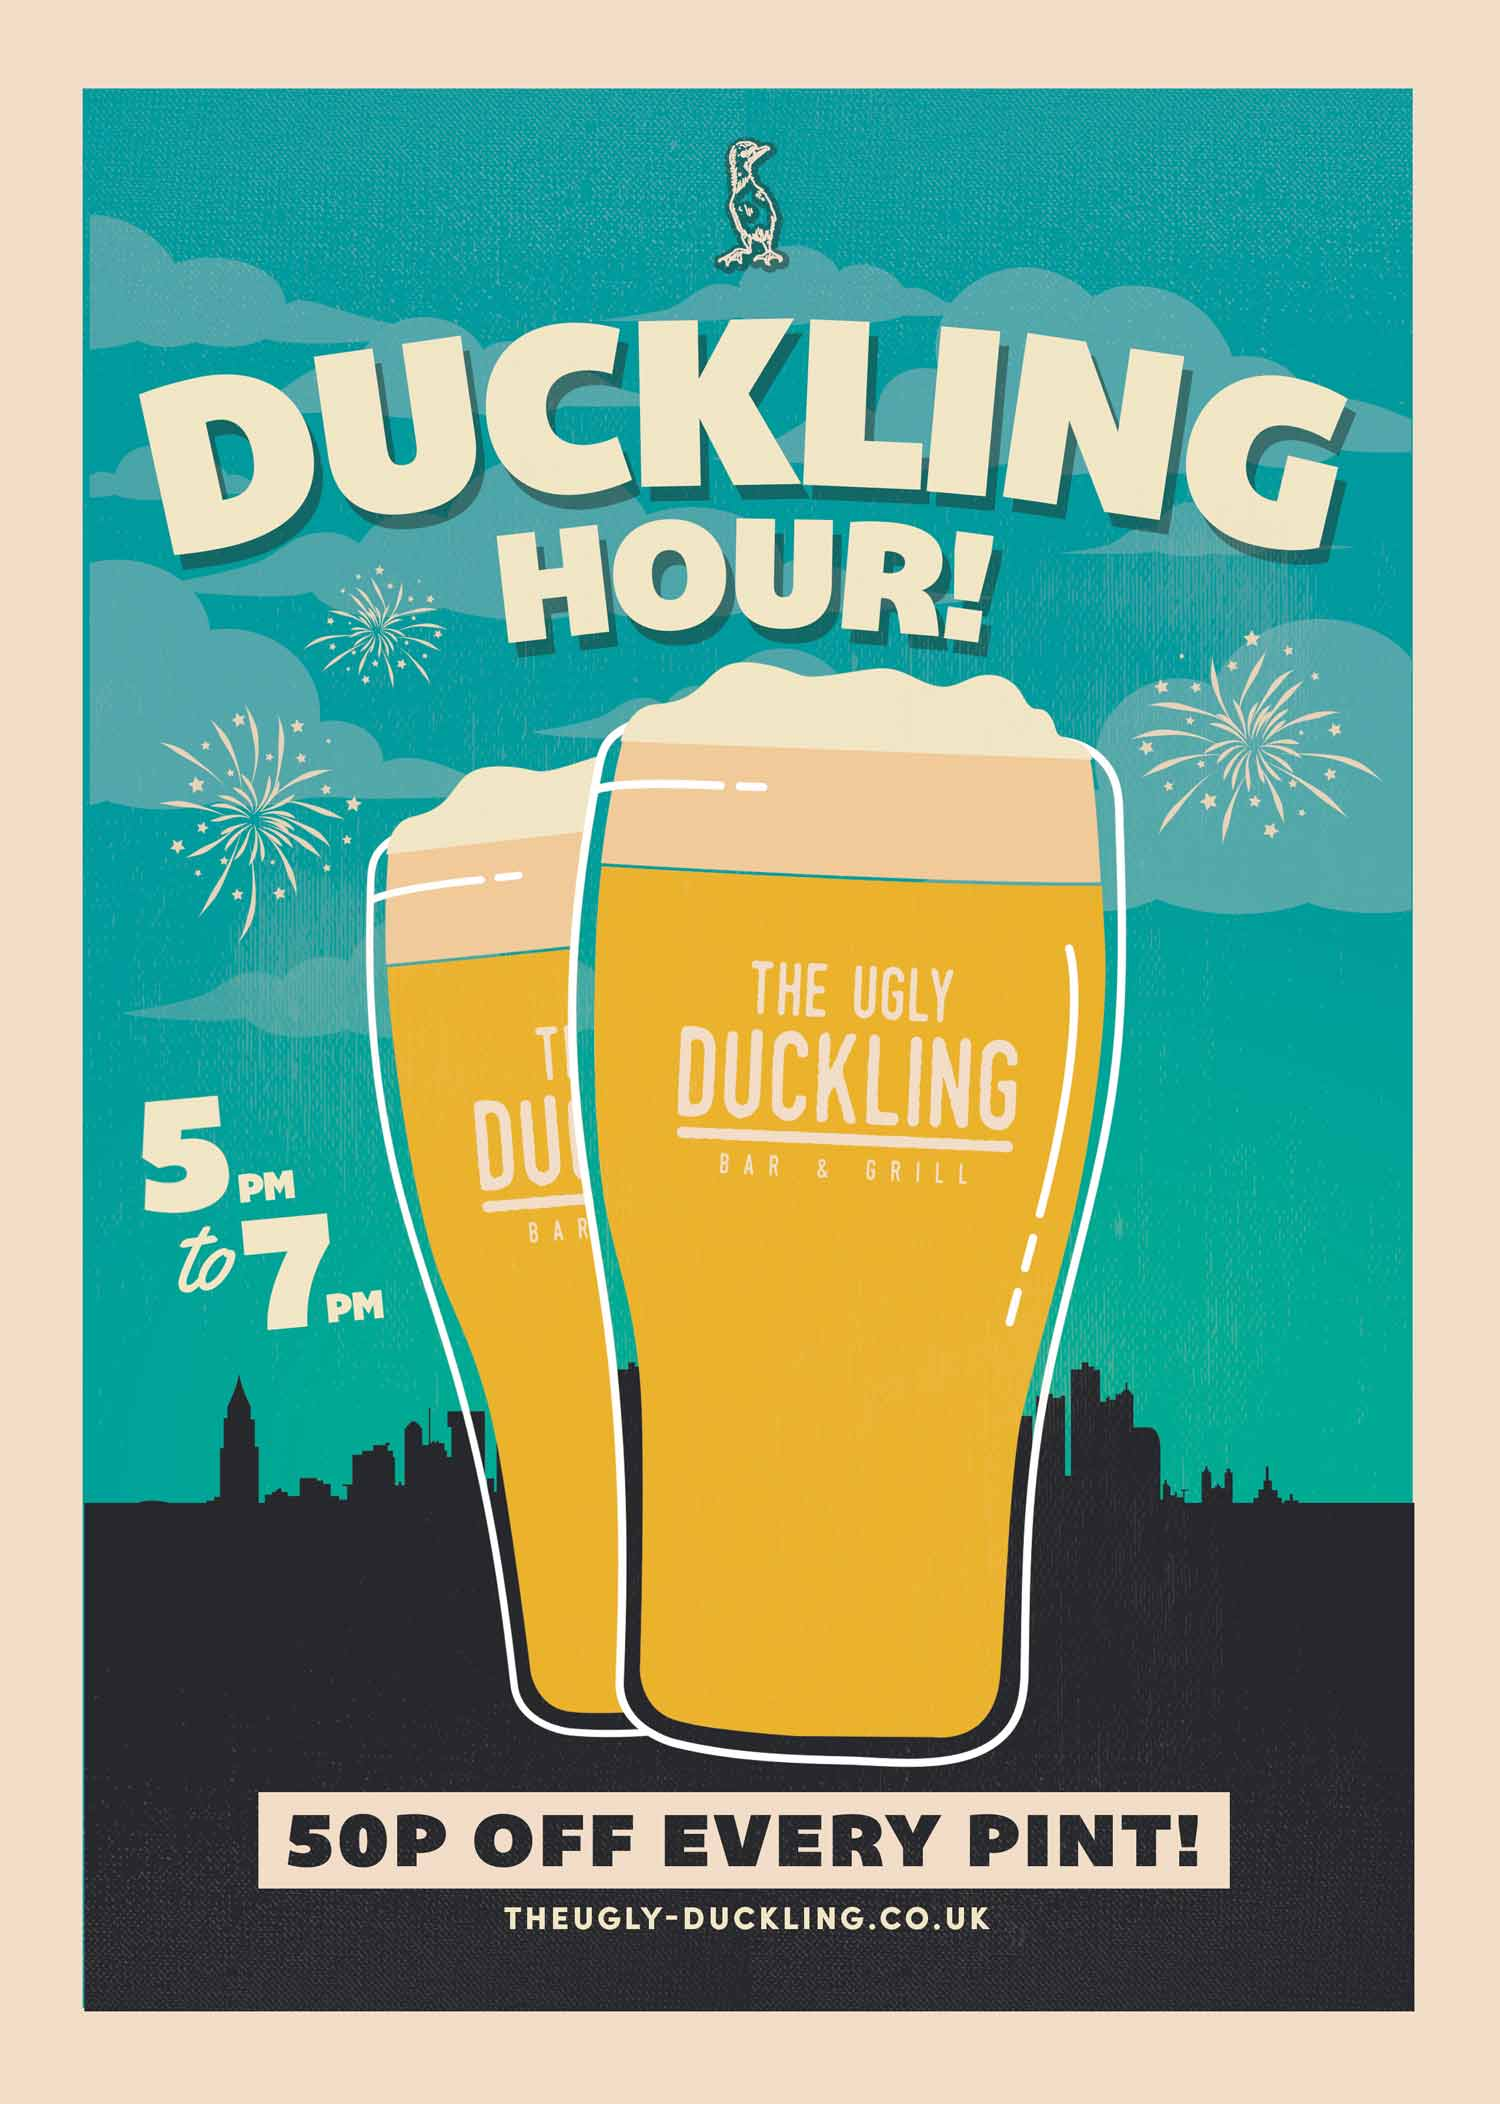 duckling-hour-poster-web.jpg